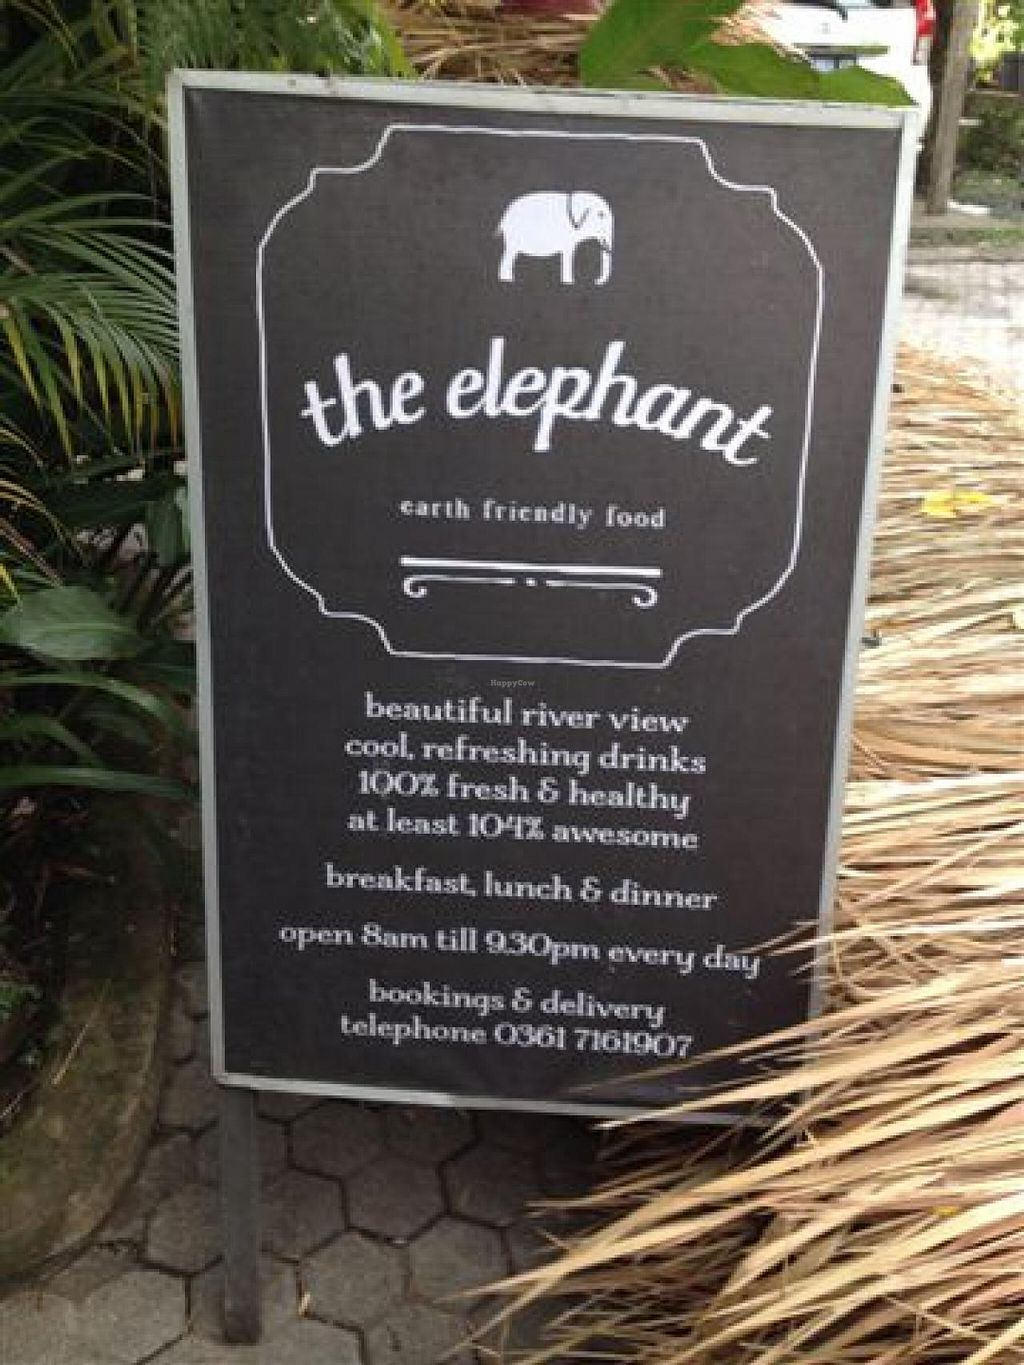 """Photo of Elephant Cafe  by <a href=""""/members/profile/ole_ersson"""">ole_ersson</a> <br/>sign posted right outside the restaurant <br/> December 11, 2014  - <a href='/contact/abuse/image/53736/87742'>Report</a>"""